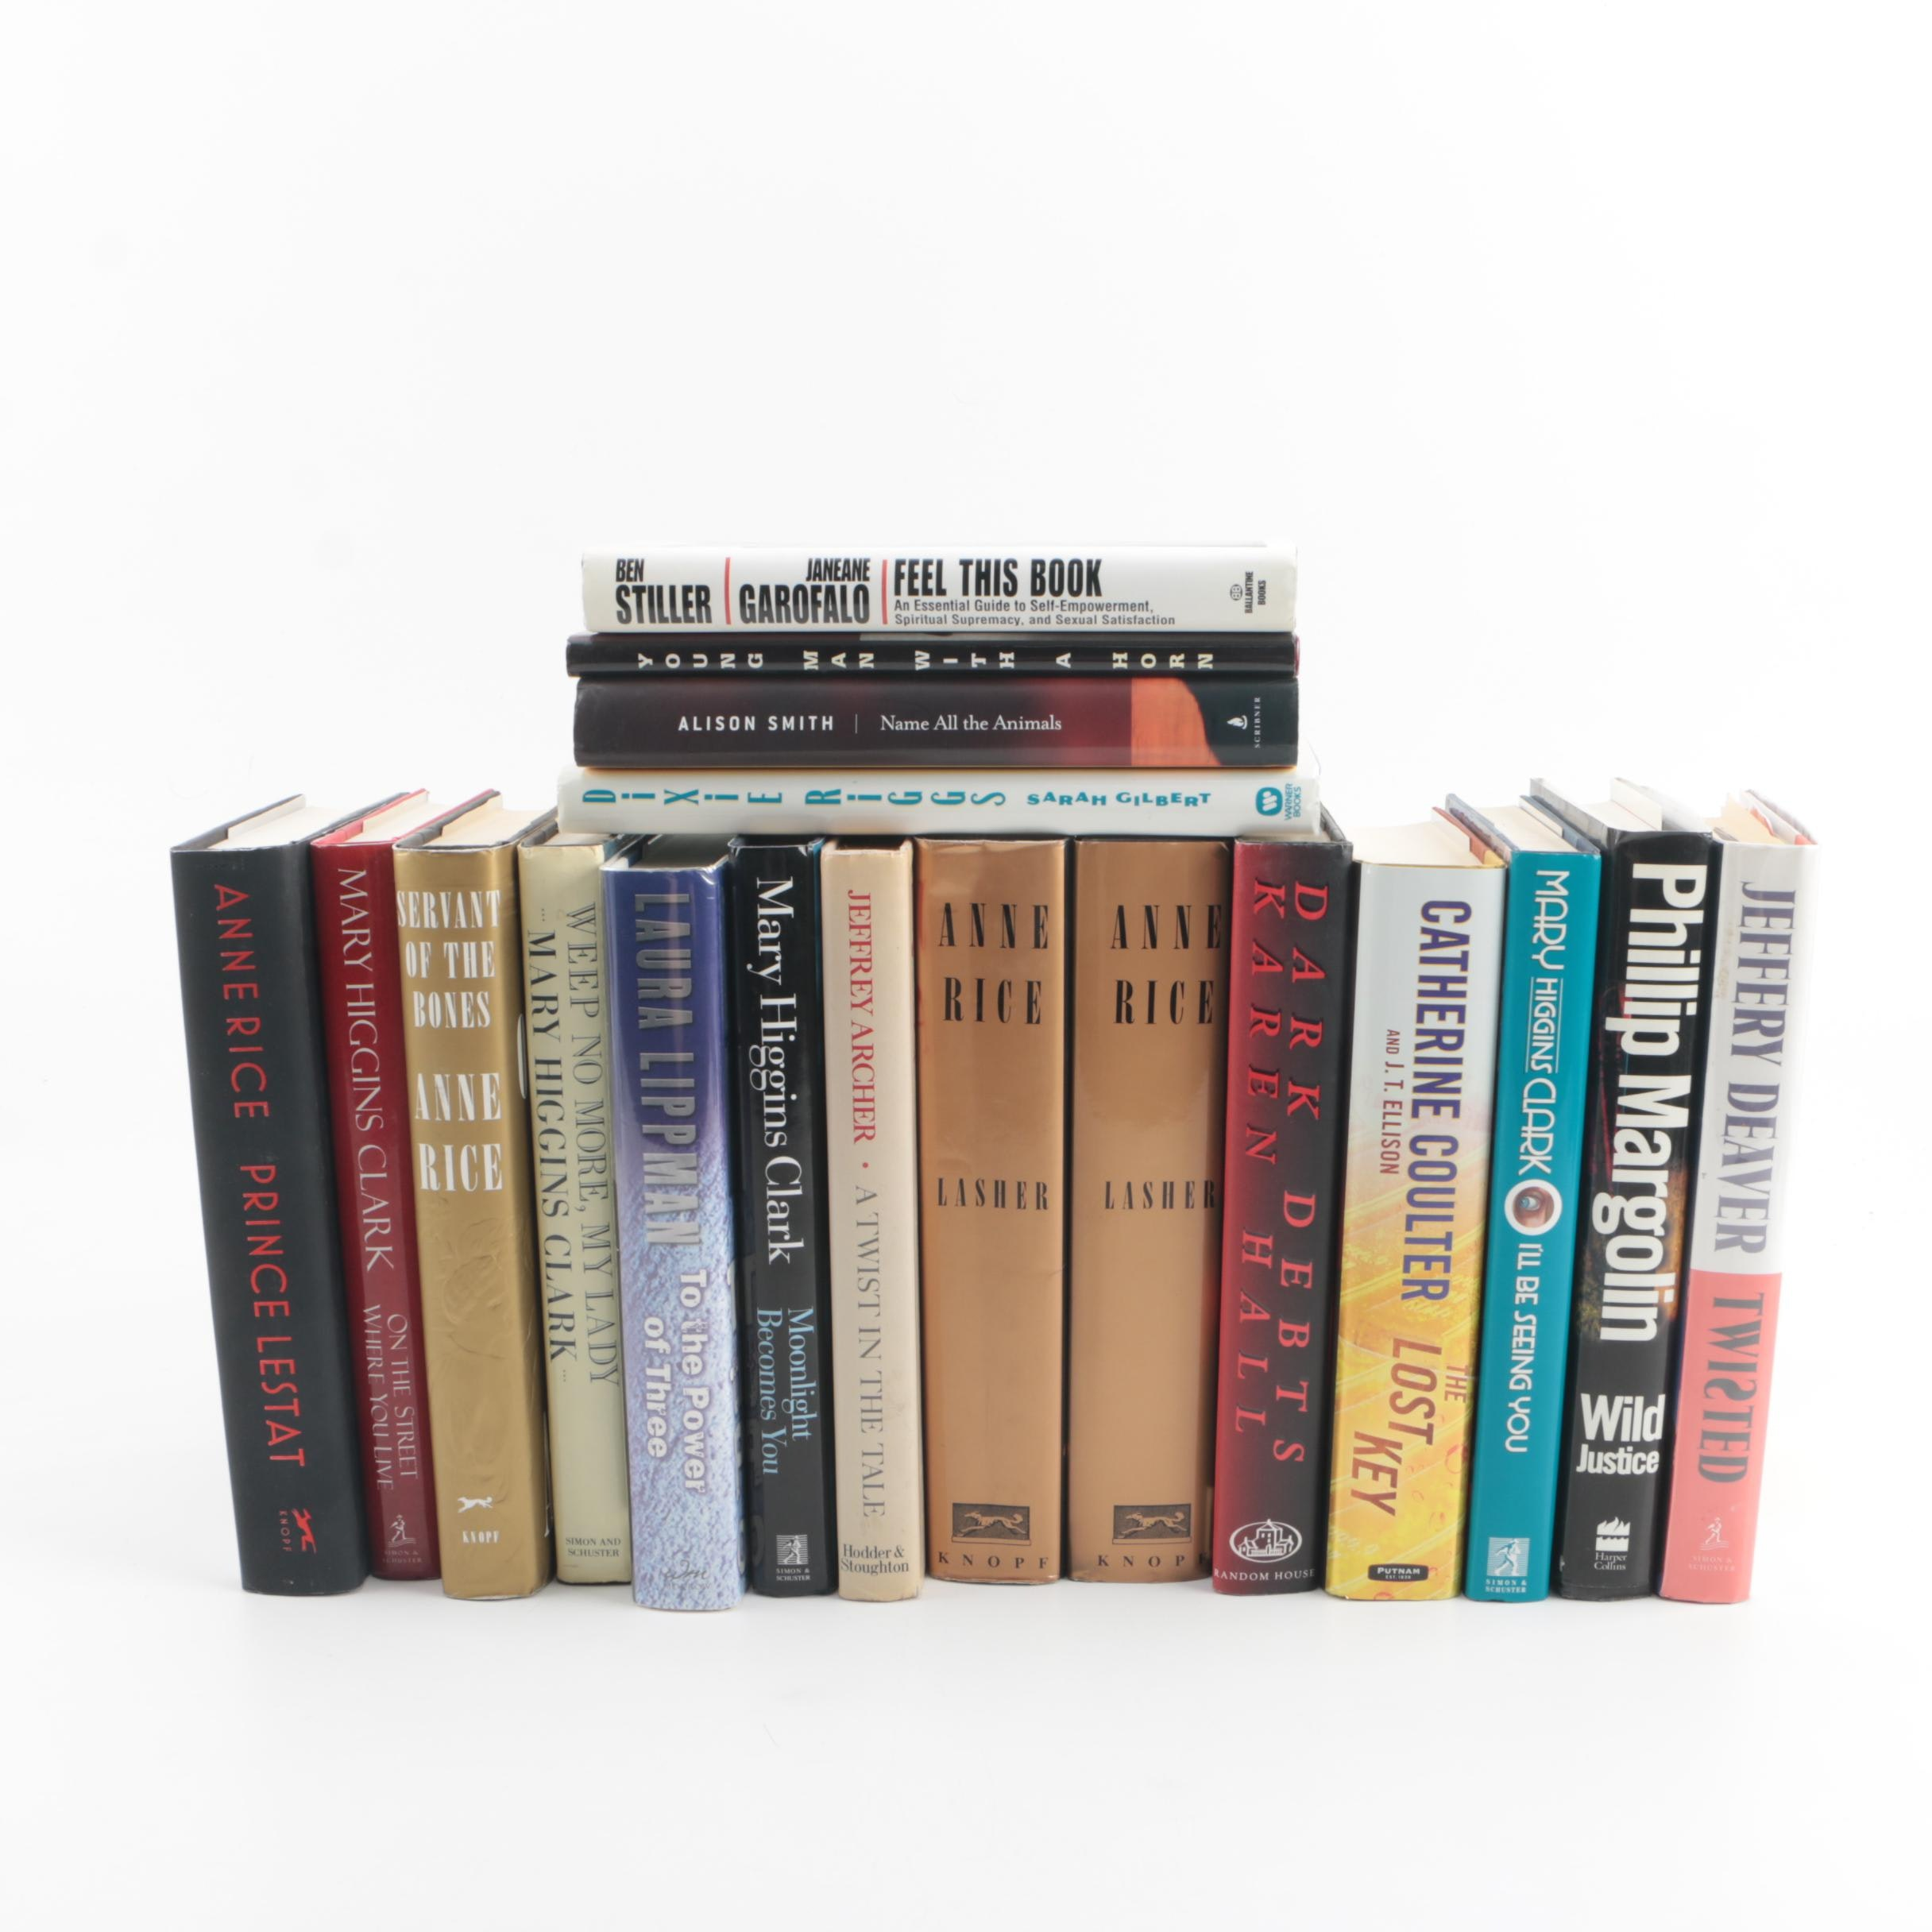 Signed Mystery and Drama Books including Anne Rice, Mary Higgins Clark